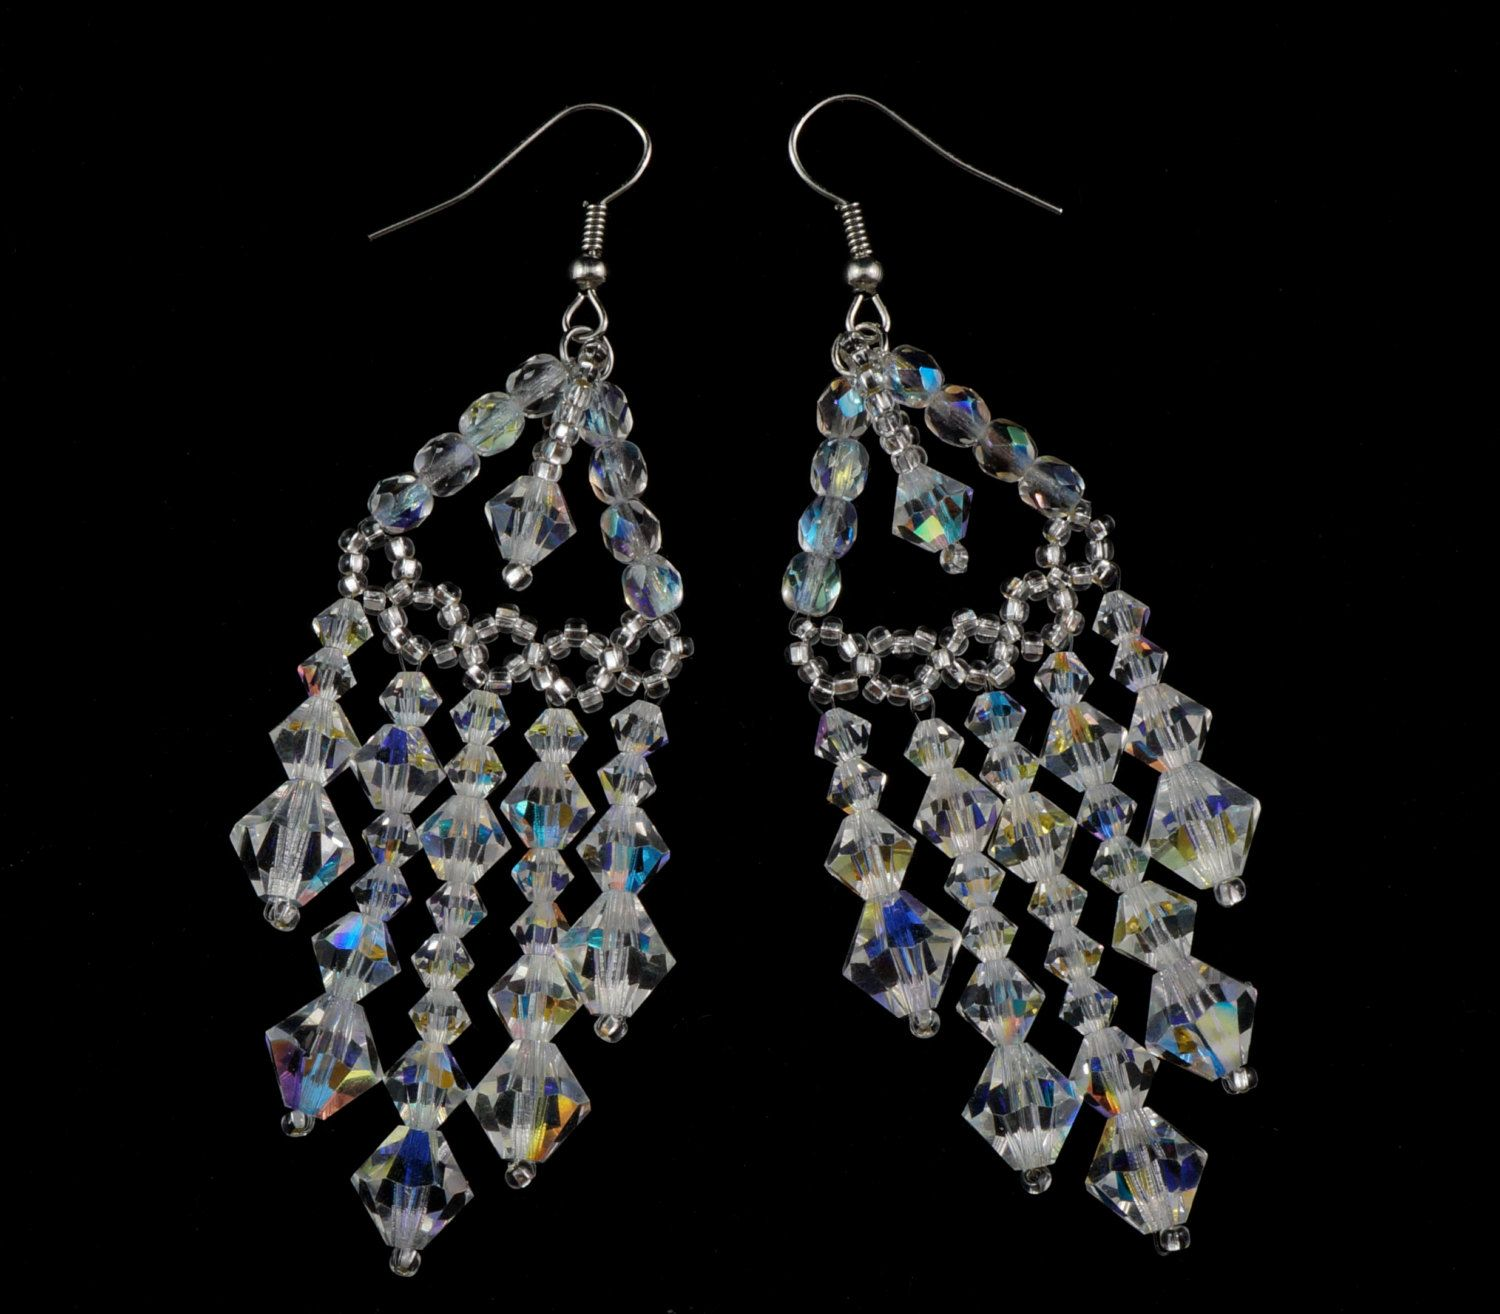 Preciosa crystal beaded chandelier earrings crystal chandelier preciosa crystal beaded chandelier earrings crystal chandelier earrings crystal tiered chandelier earrings chandelier aloadofball Image collections